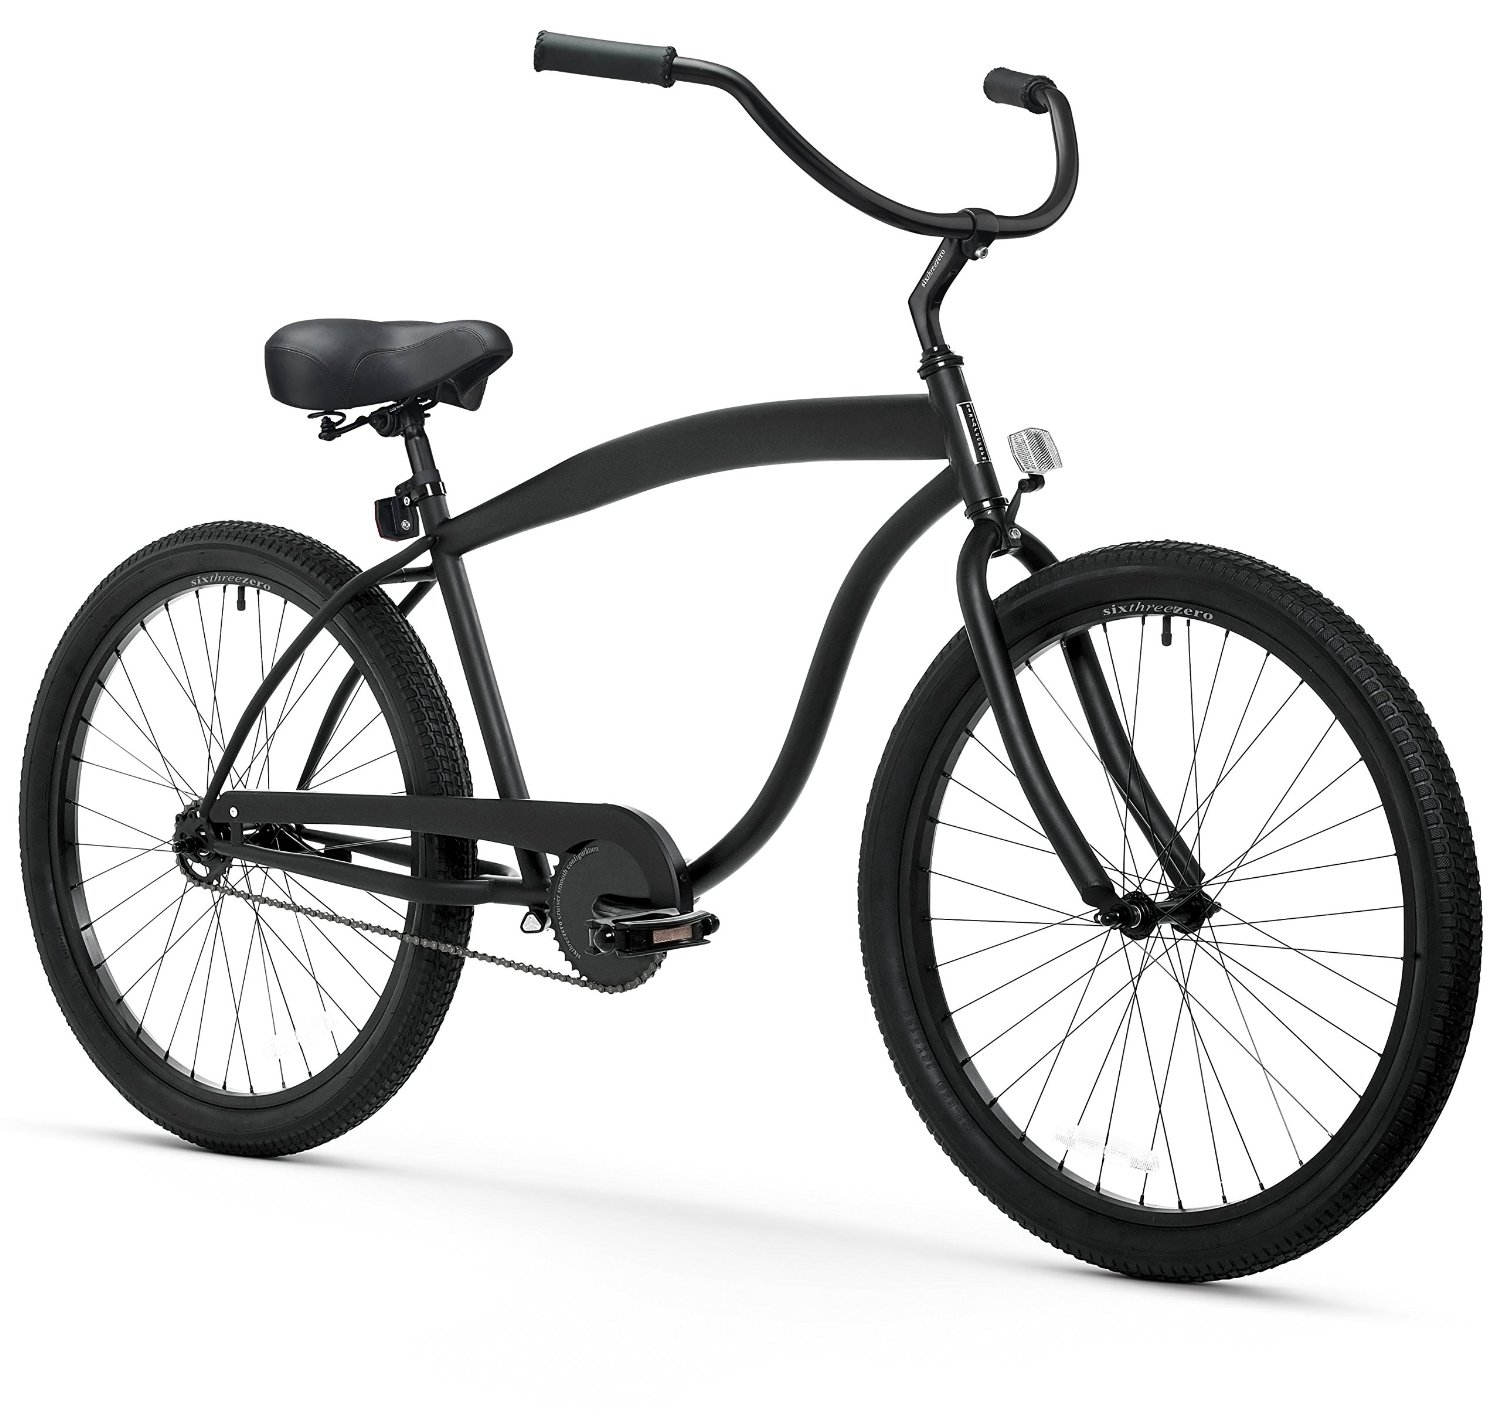 "sixthreezero In The Barrel Men's Beach Cruiser Bike – Comfort Bubble Saddle and 26"" Wheels"